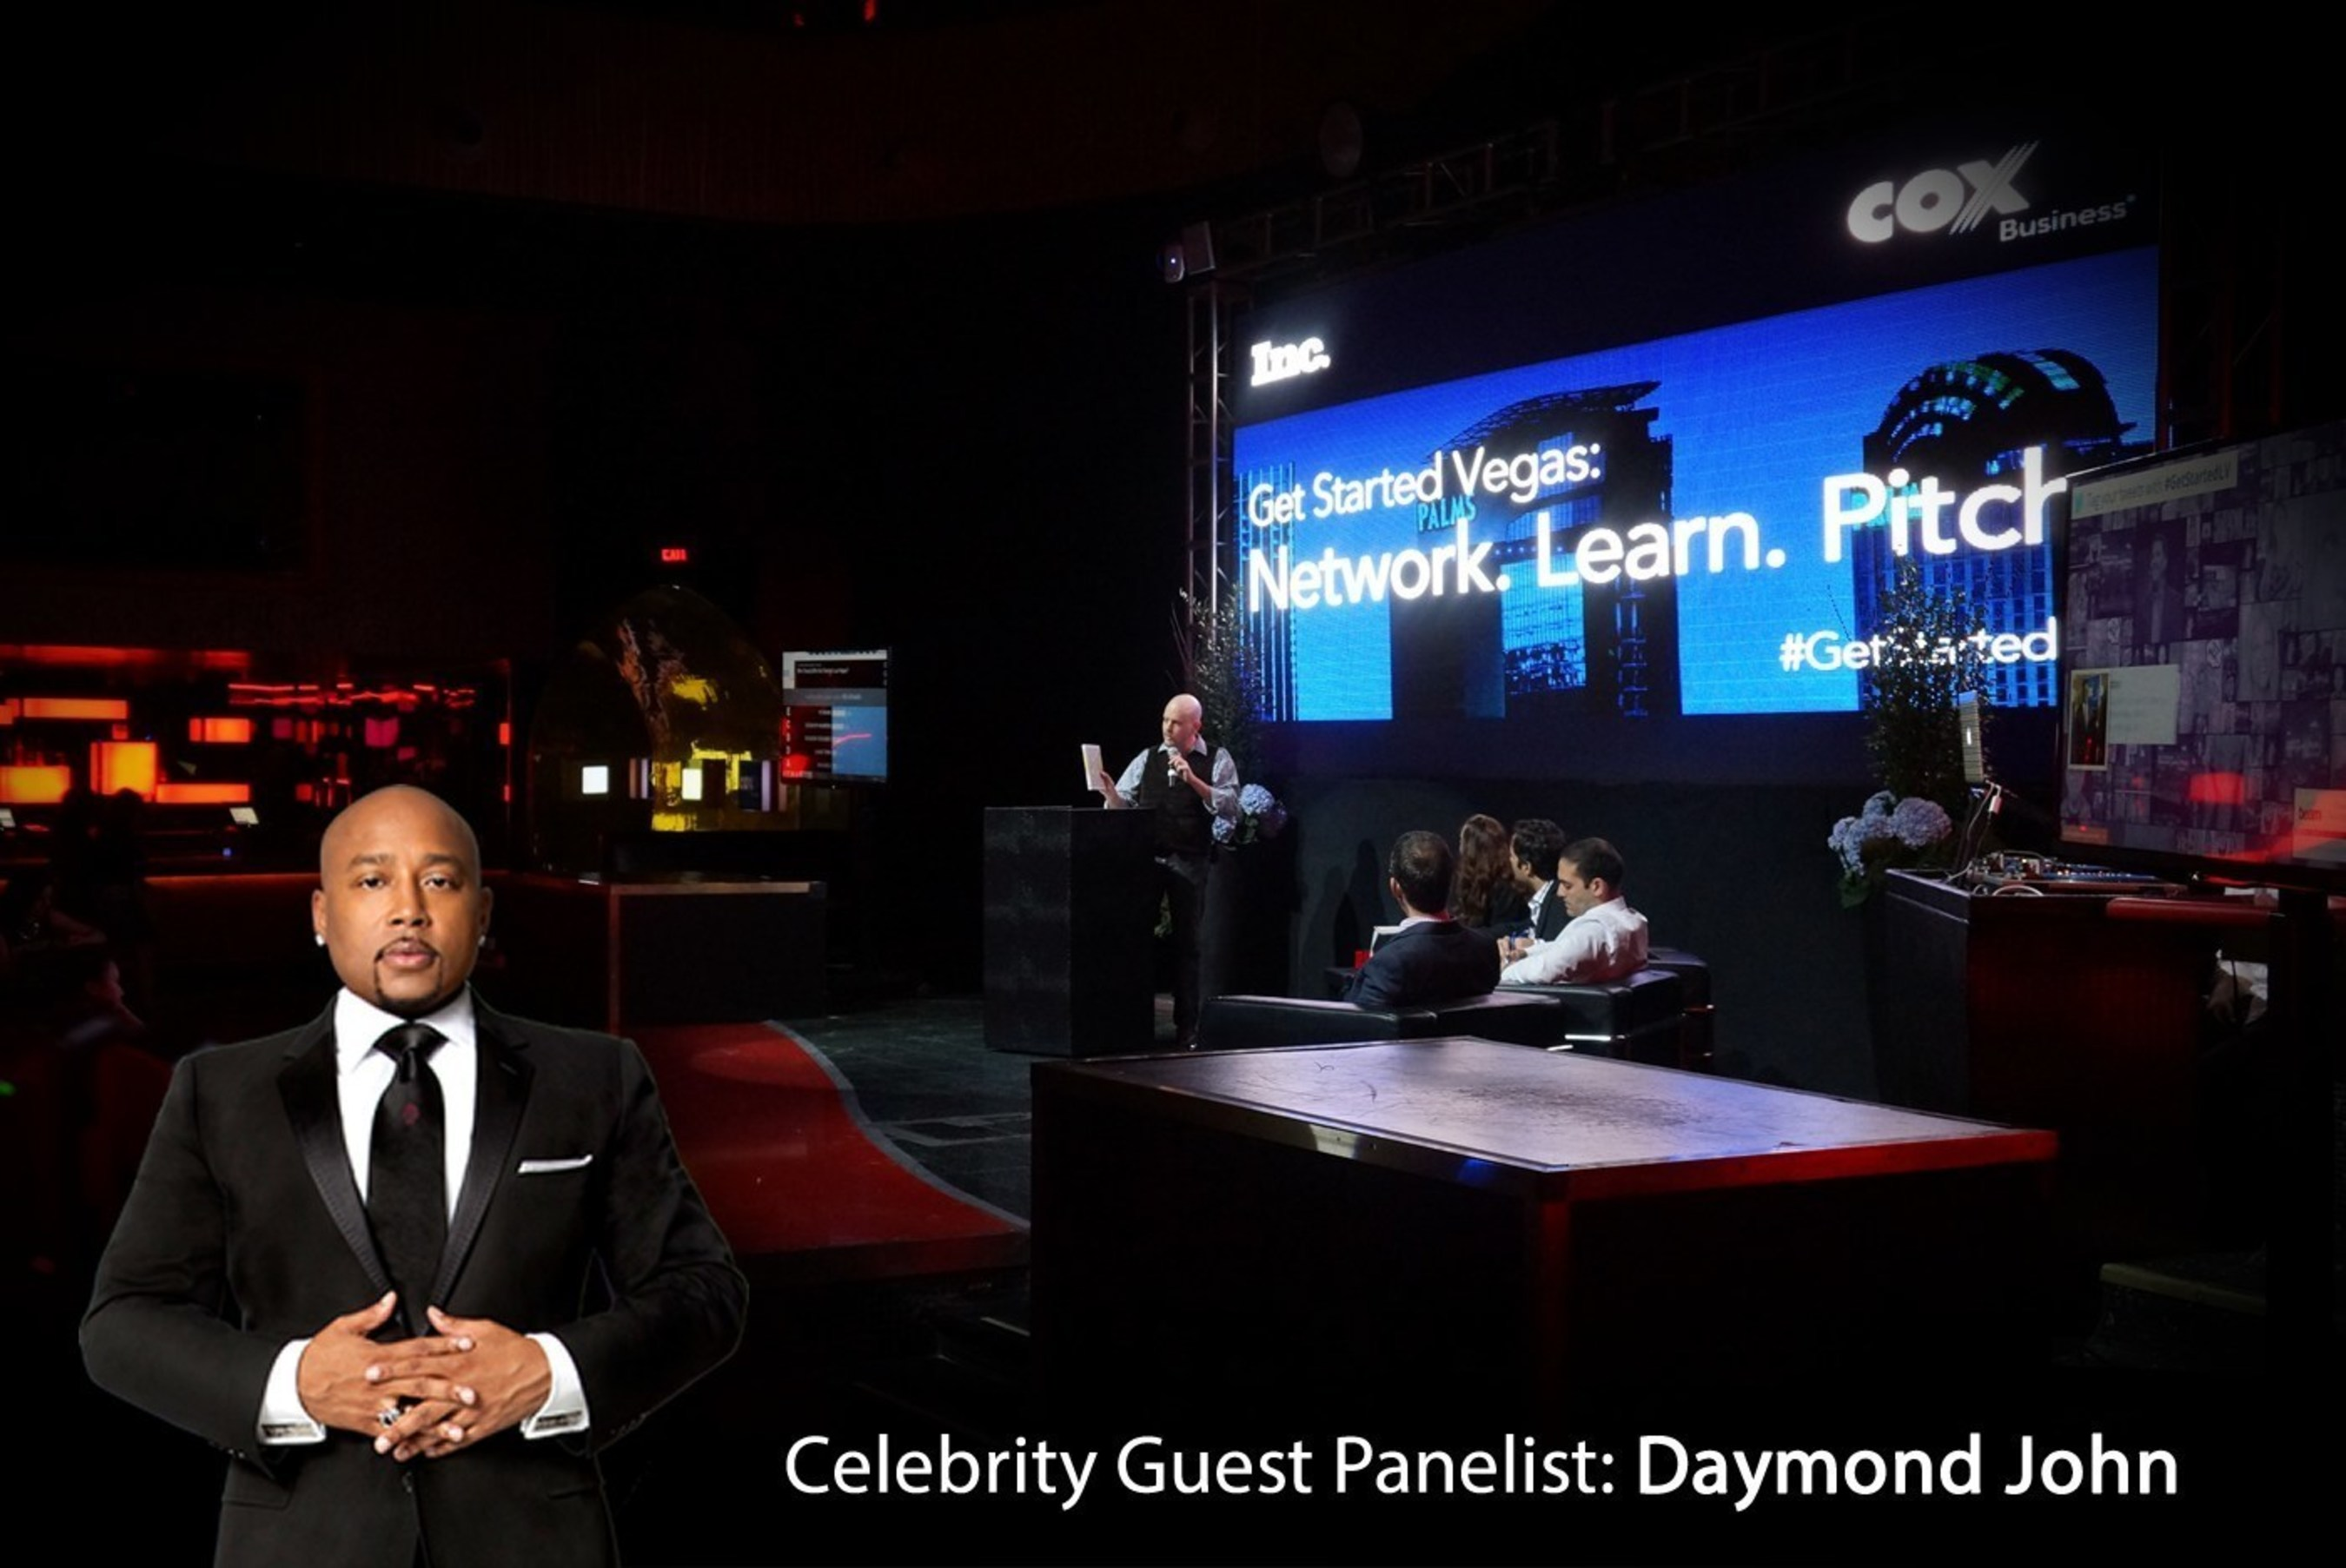 Renowned Entrepreneur Daymond John Joins Judging Panel for Cox Business and Inc. Magazine's Get Started Las Vegas Pitch Competition